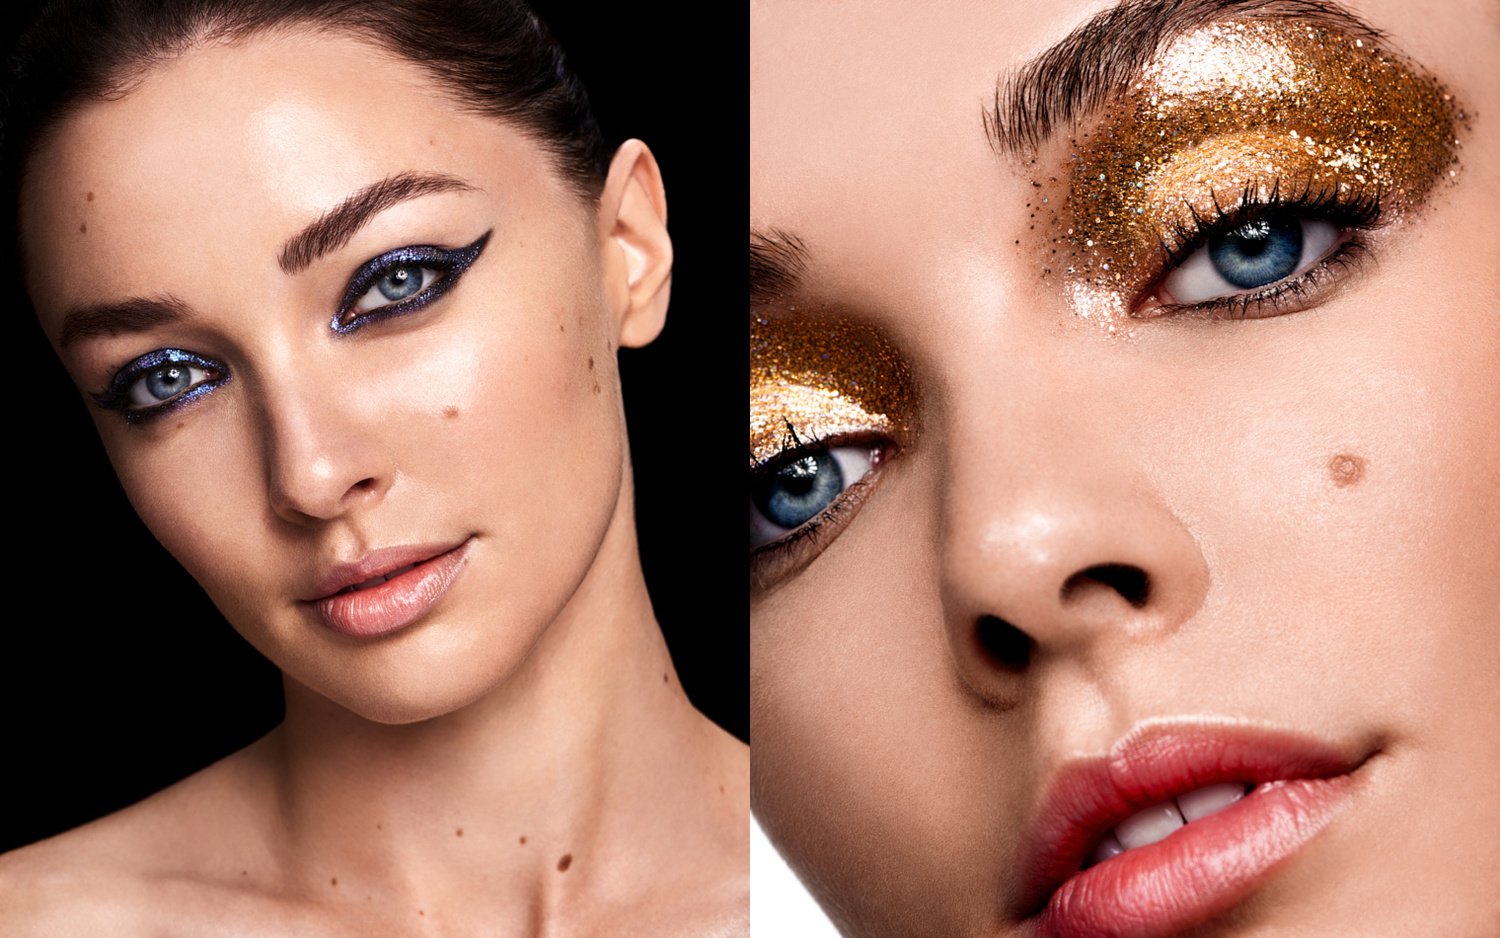 Beauty photo with glitter eyeshadow